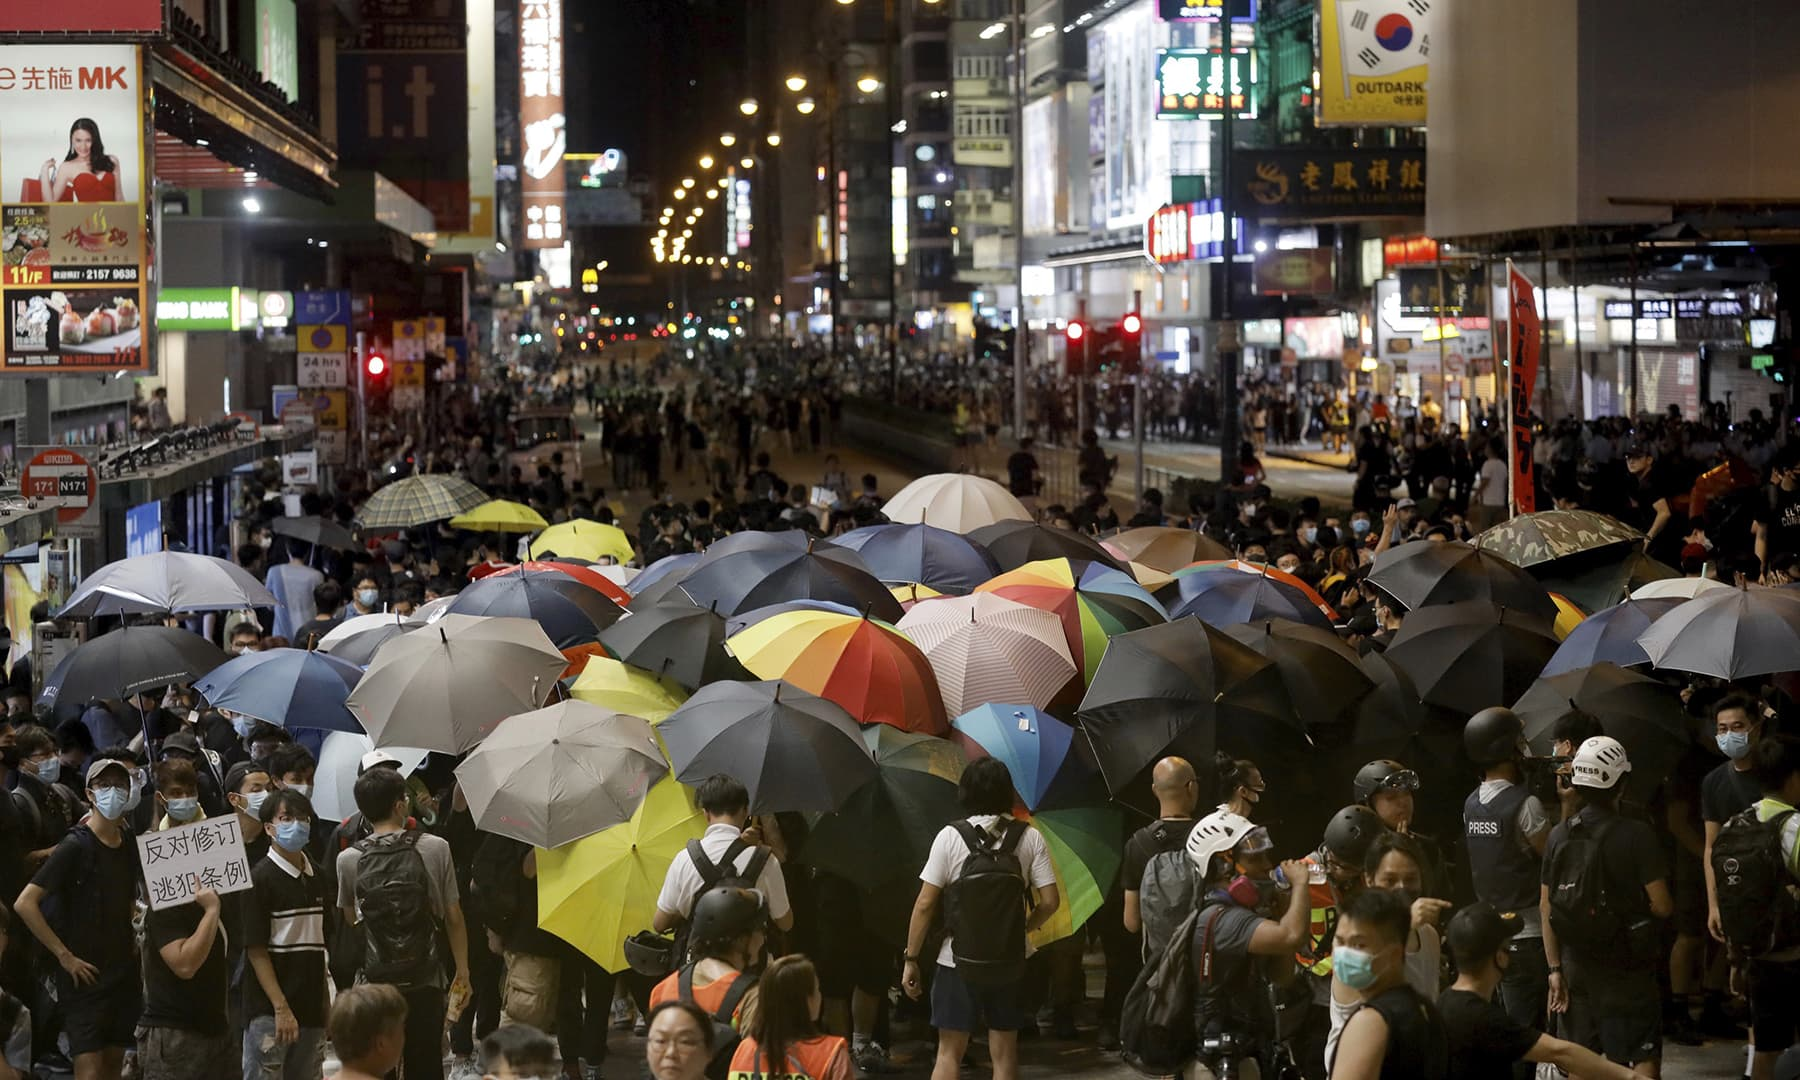 Protesters with umbrellas prepare to face-off police in anti-riot gear in Hong Kong on Sunday, July 7. — AP